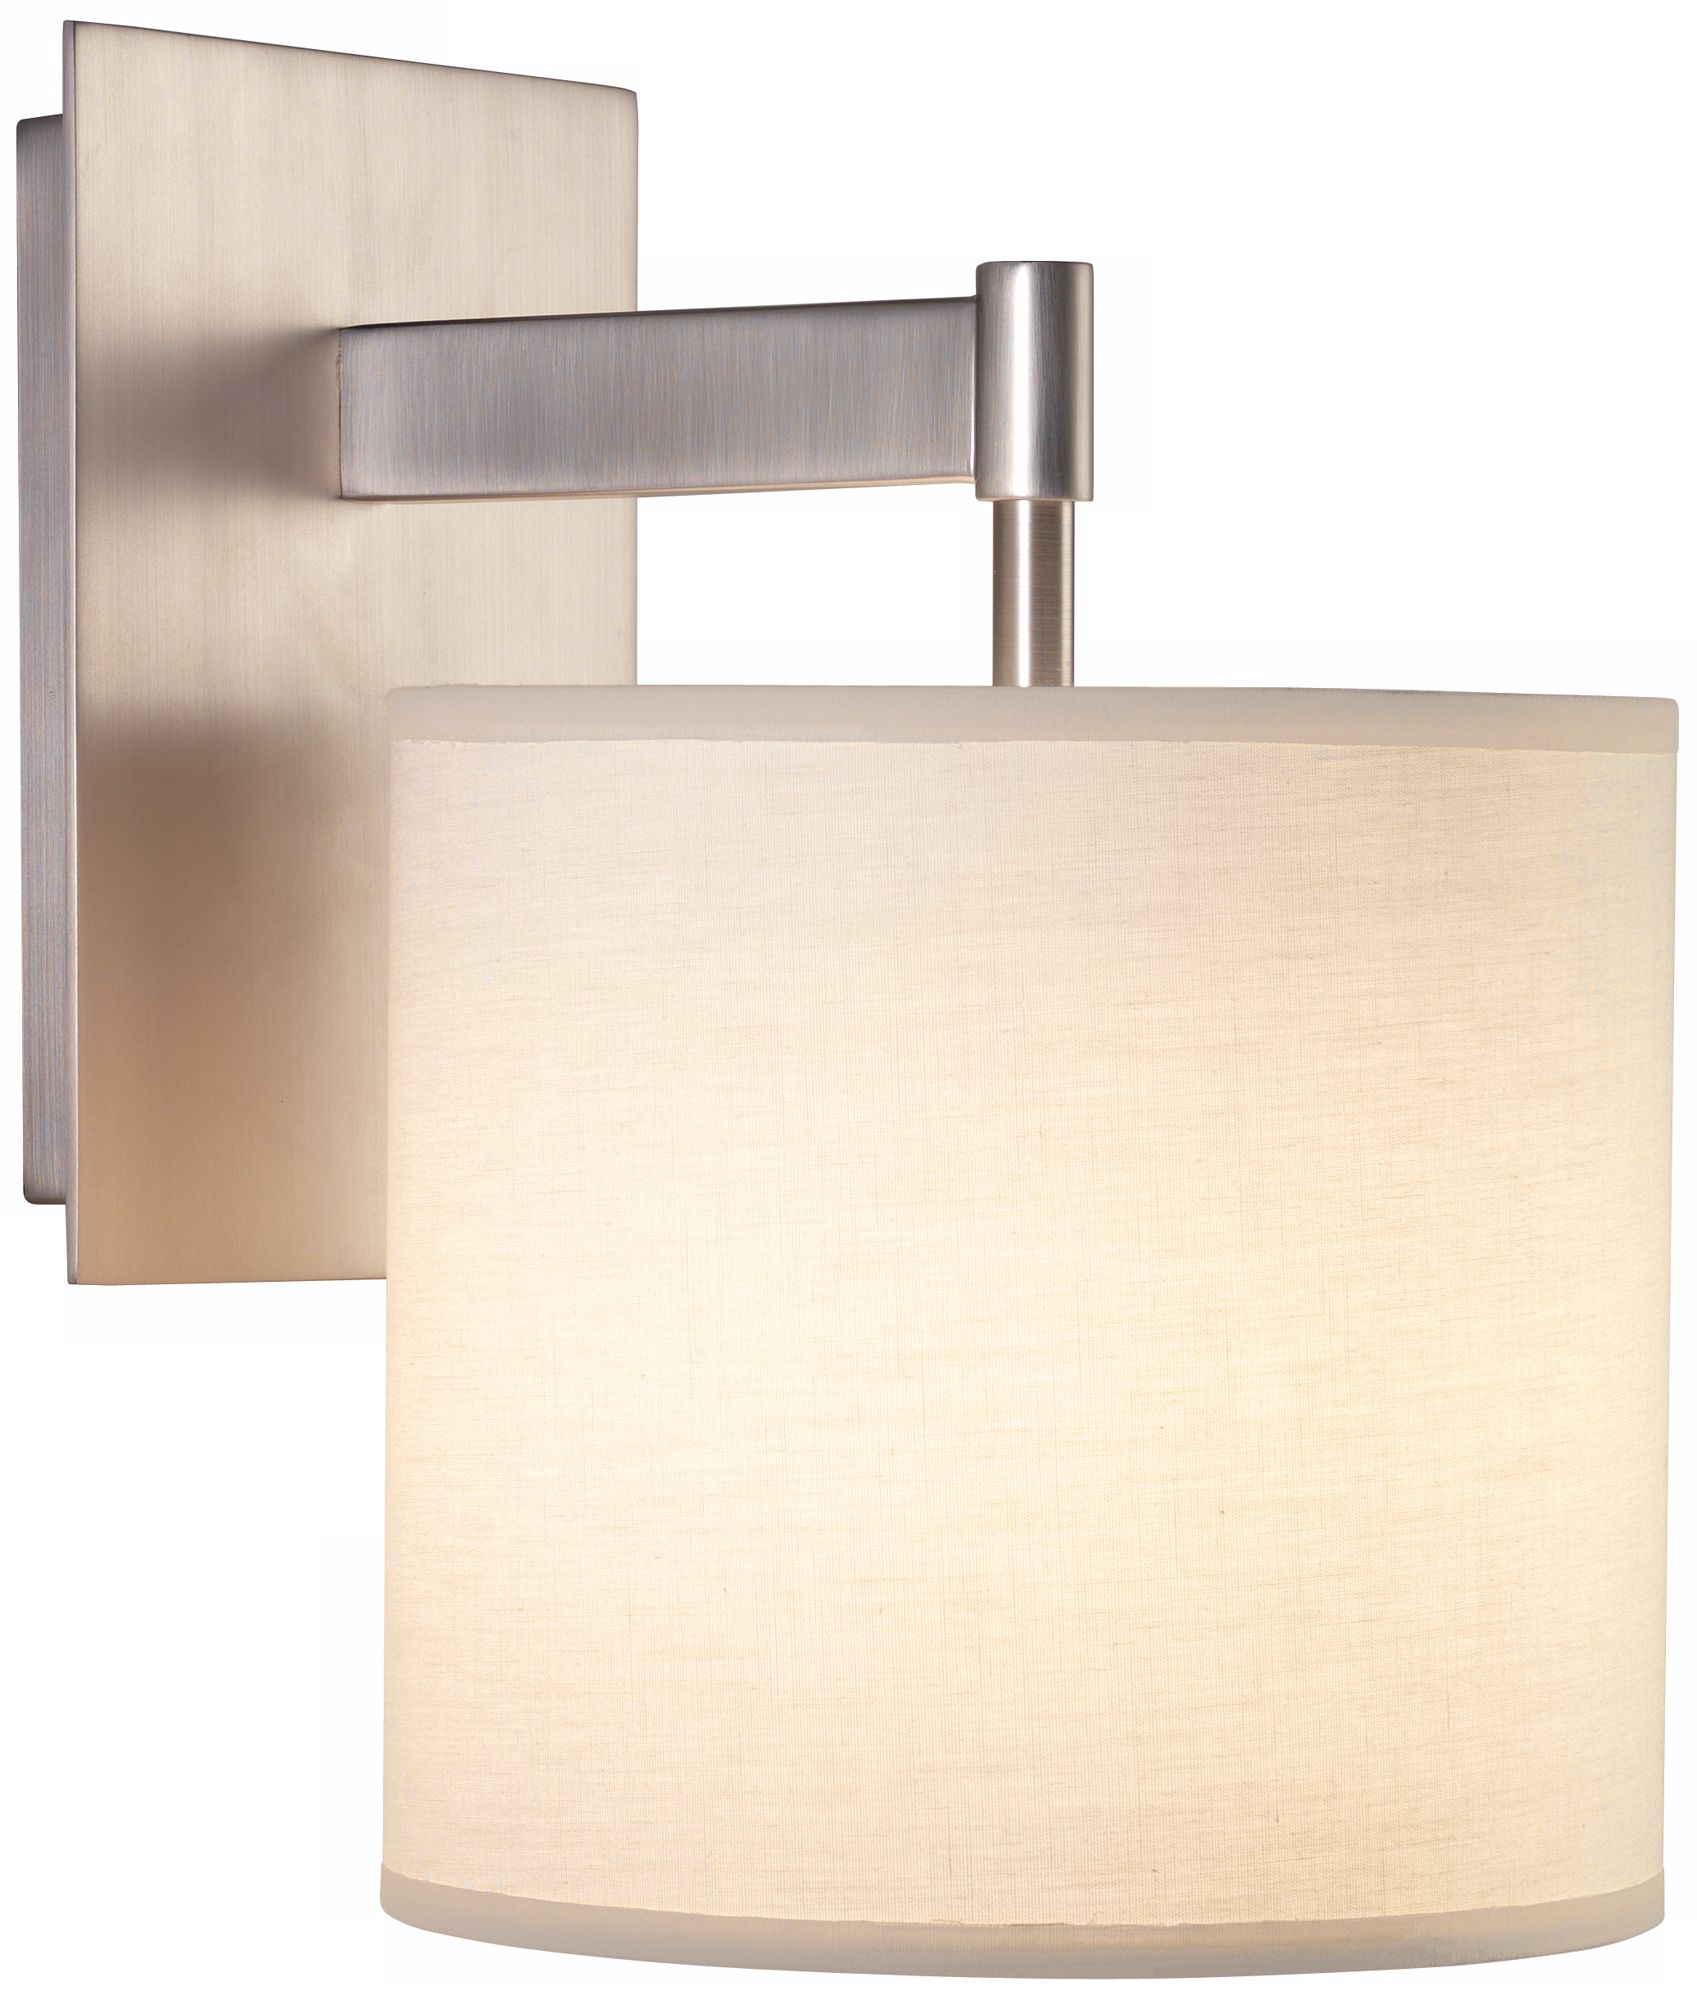 Lowes Electric Wall Sconces : Plug In Wall Sconce.Wall Sconce Plug In Wall Sconces Lowes Lowes Wall Lamps. Cedar U0026 Moss ...